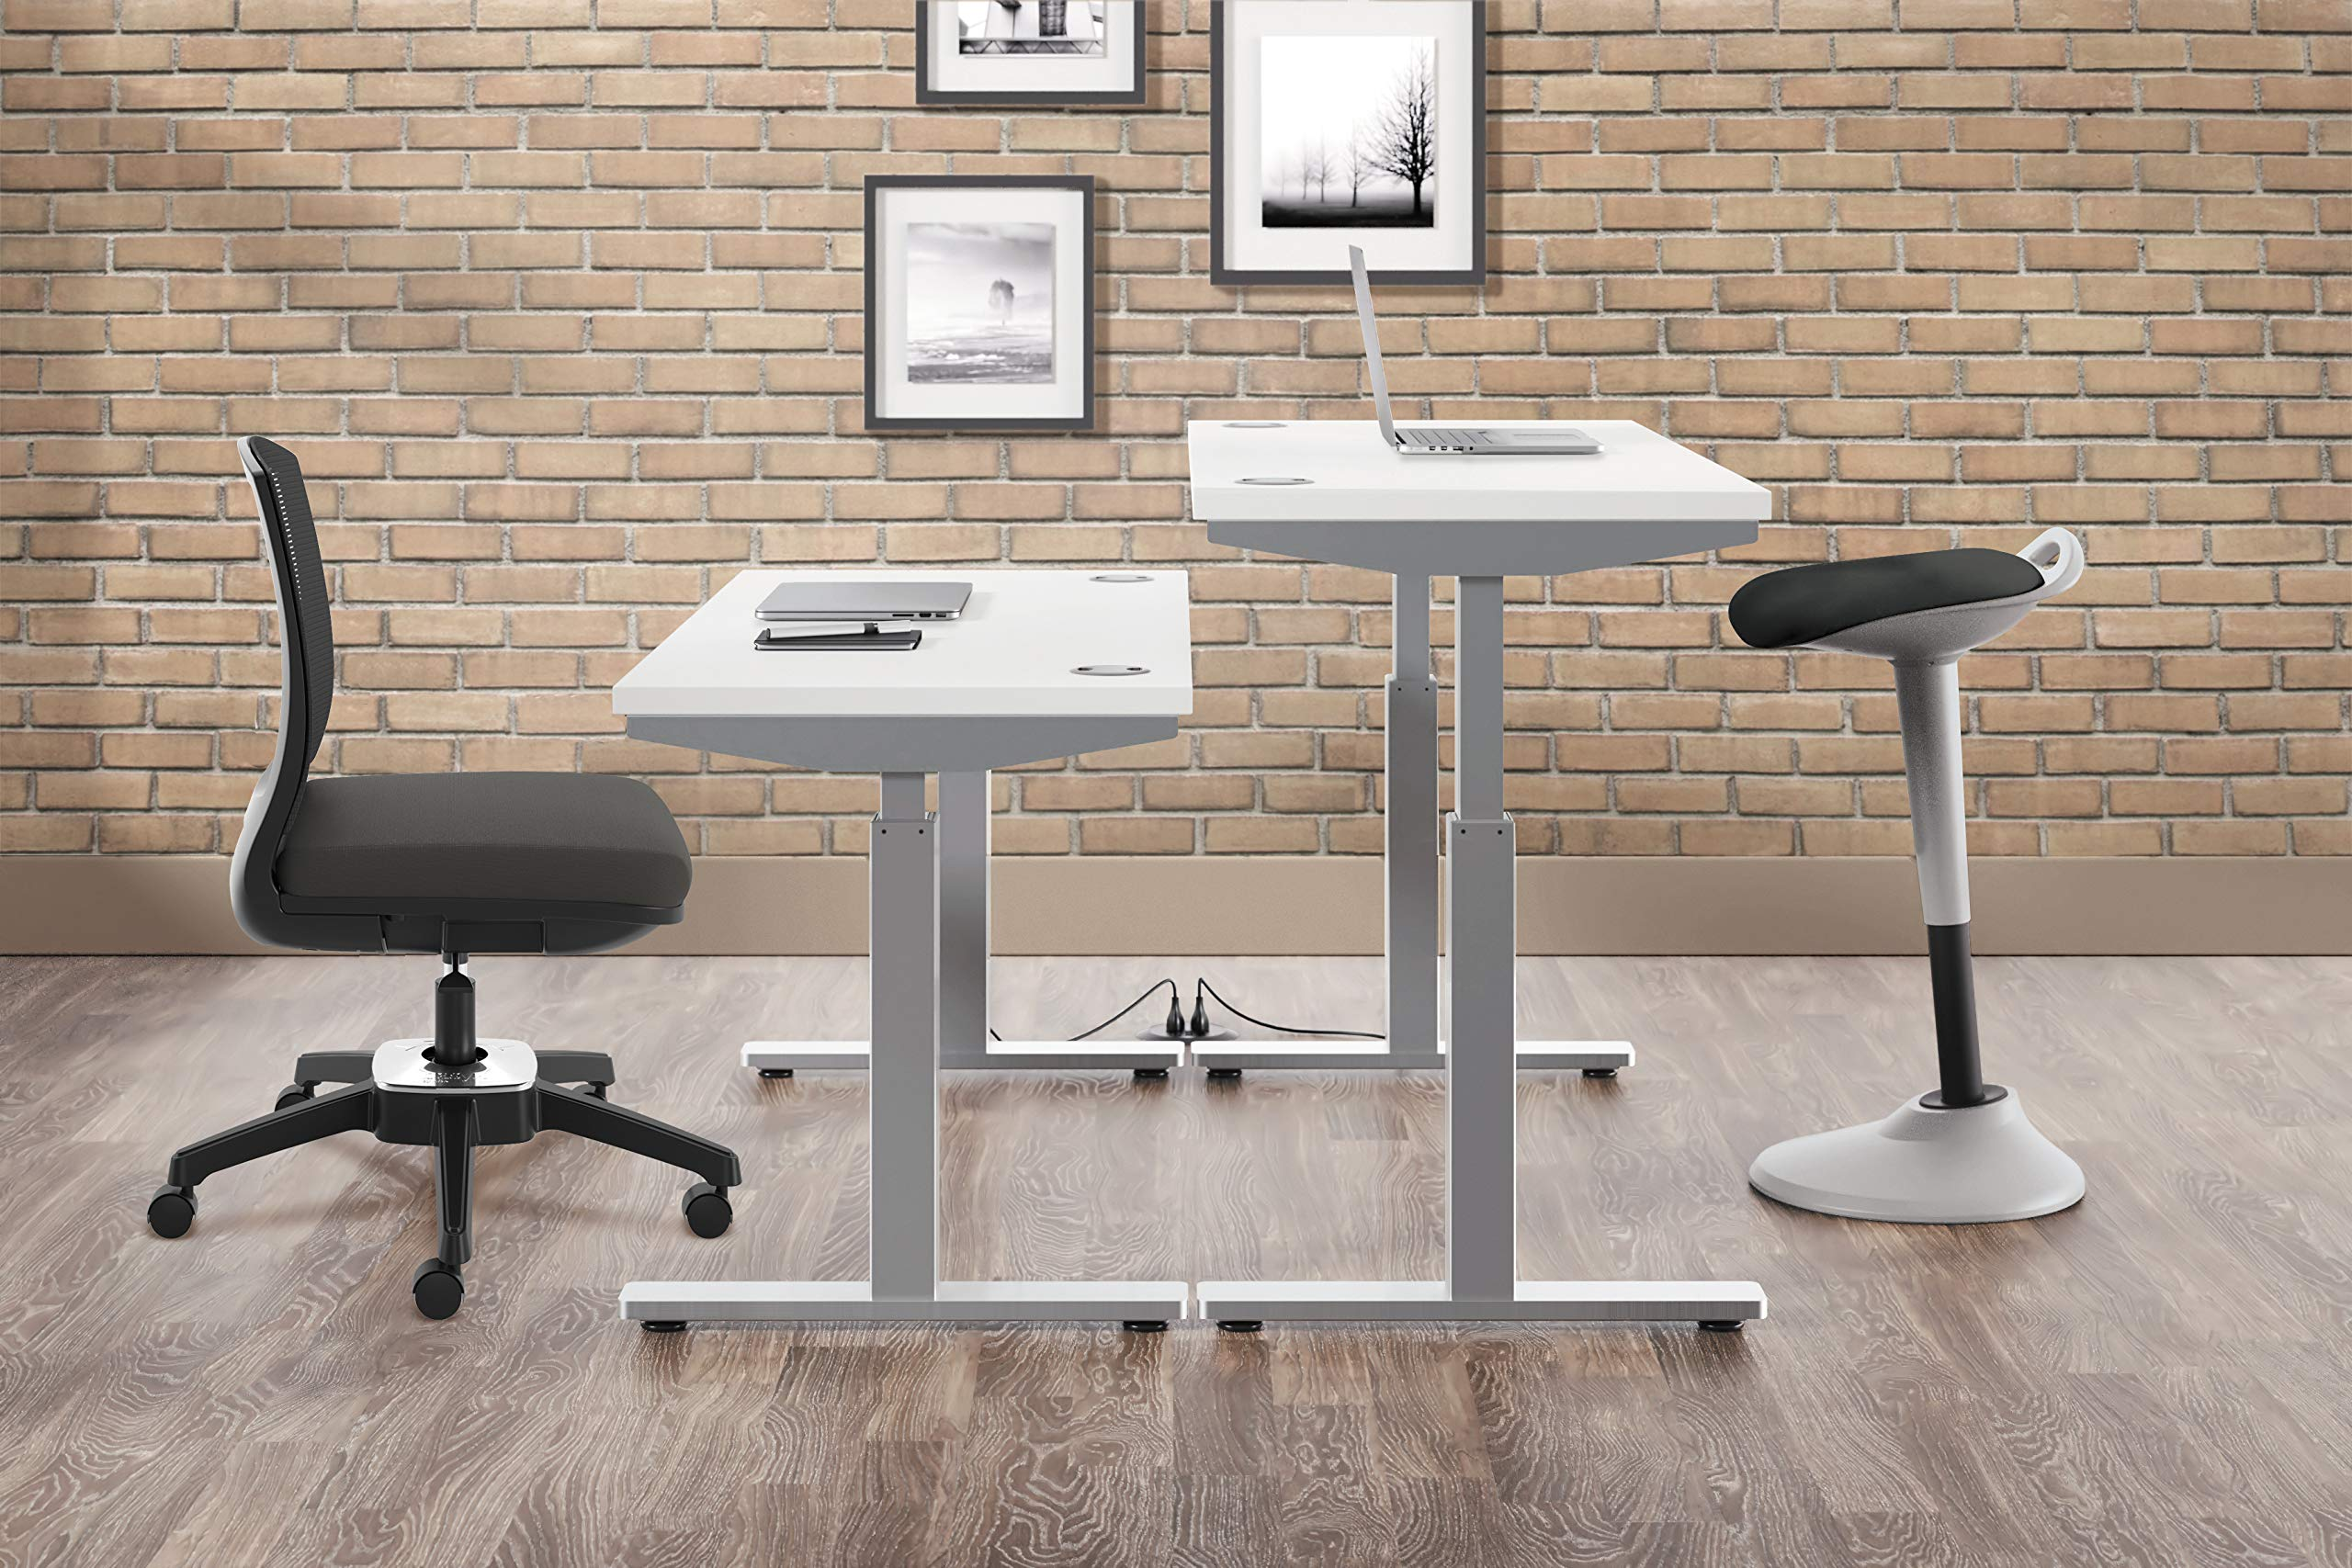 HON Perch Stool, Sit to Stand Backless Stool for Office Desk, Black (HVLPERCH) by HON (Image #2)